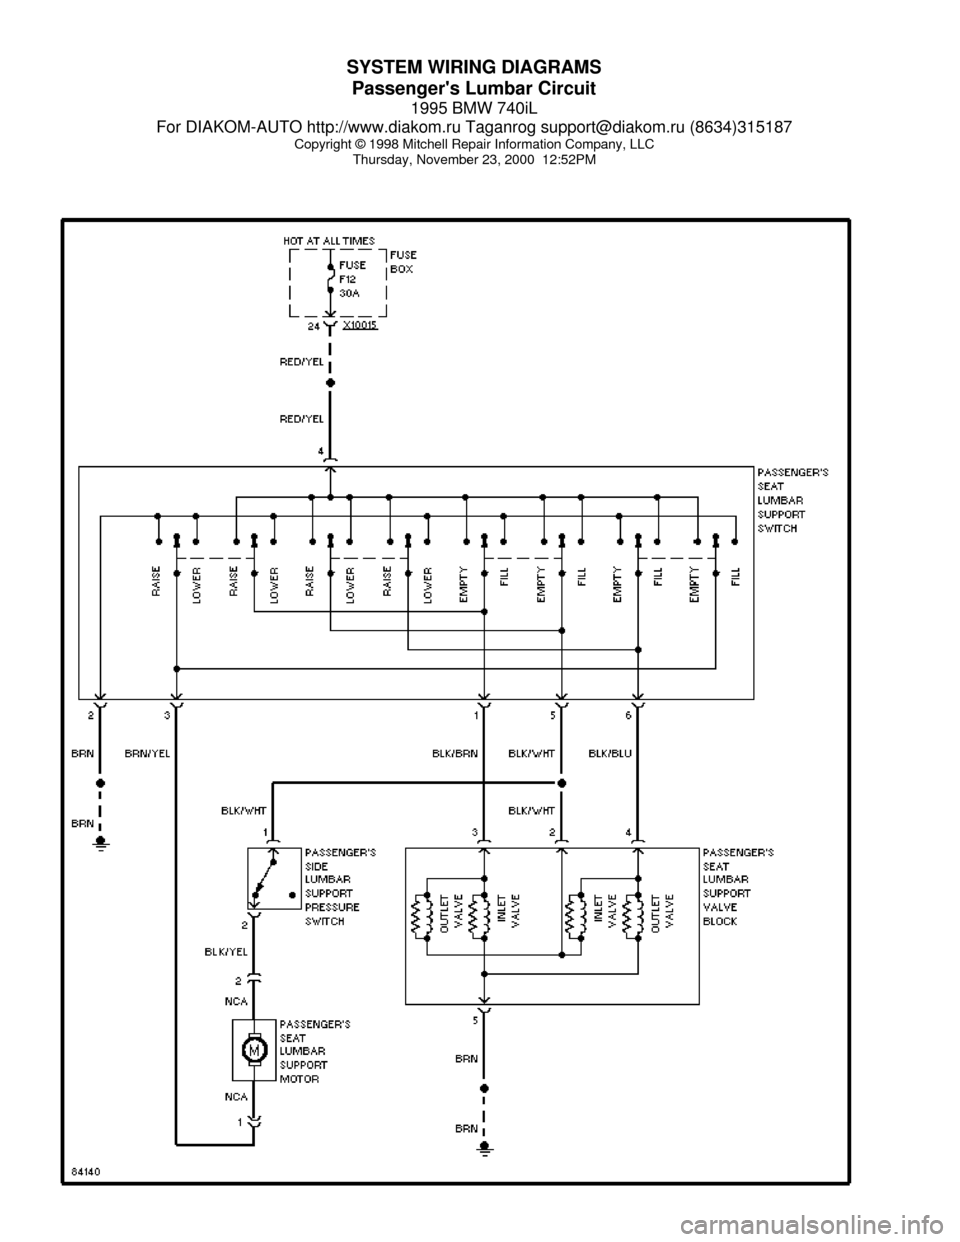 e38 wiring diagram pdf bmw 740il 1995 e38 system wiring diagrams 2002 f150 wiring diagram pdf